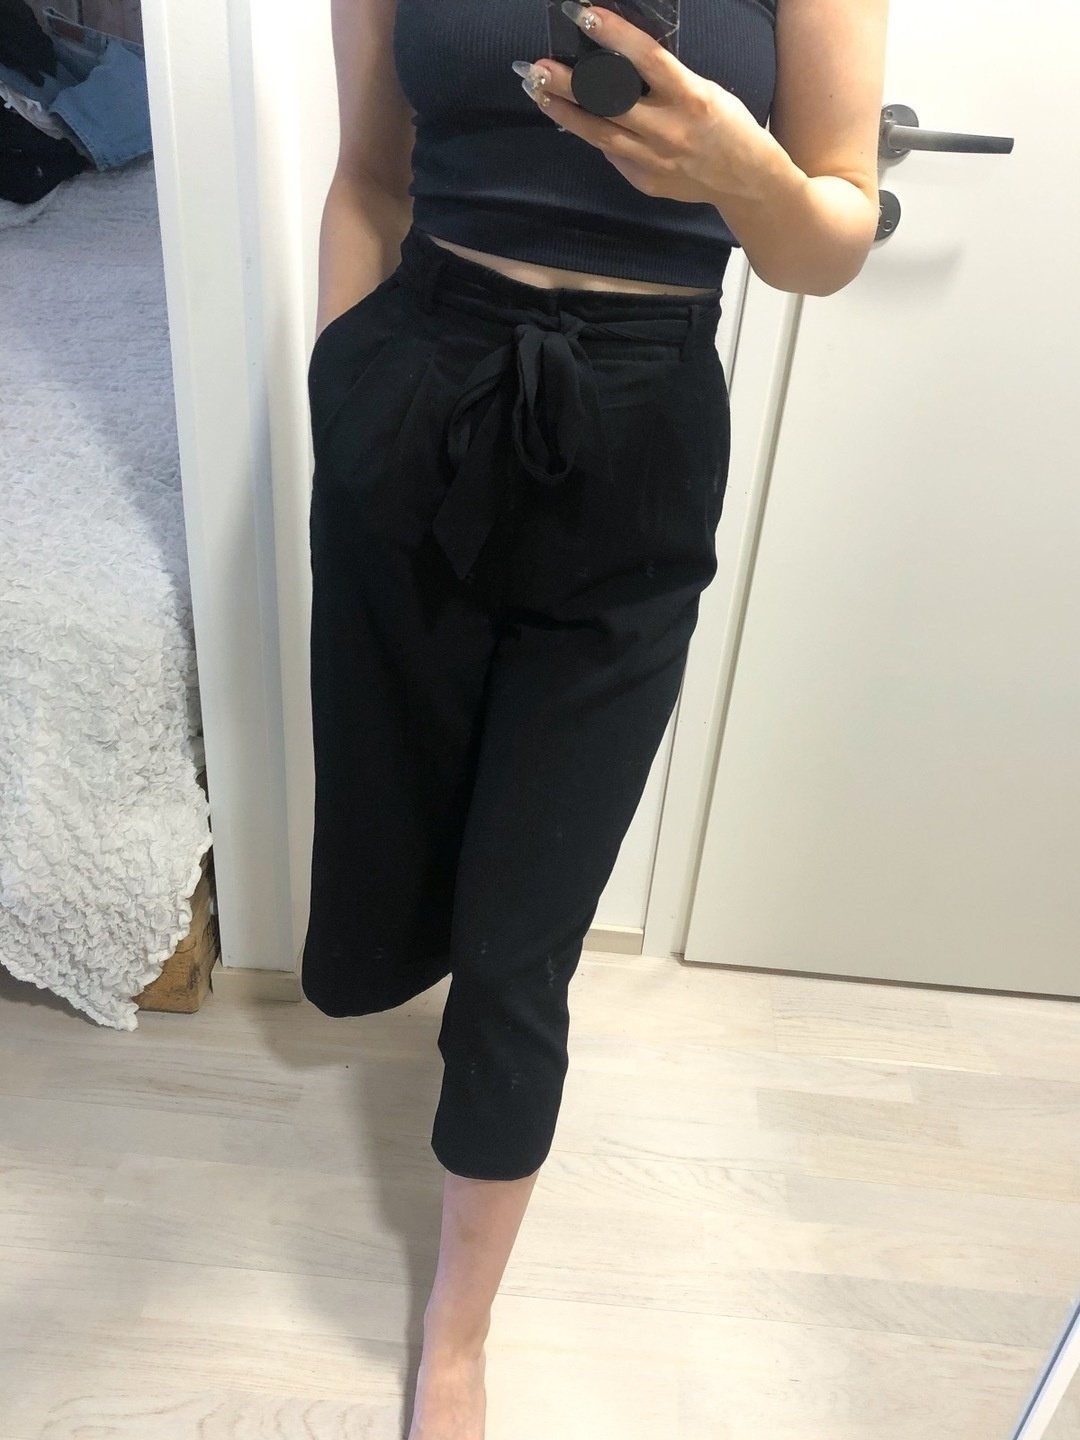 Women's trousers & jeans - NEW YORKER photo 1